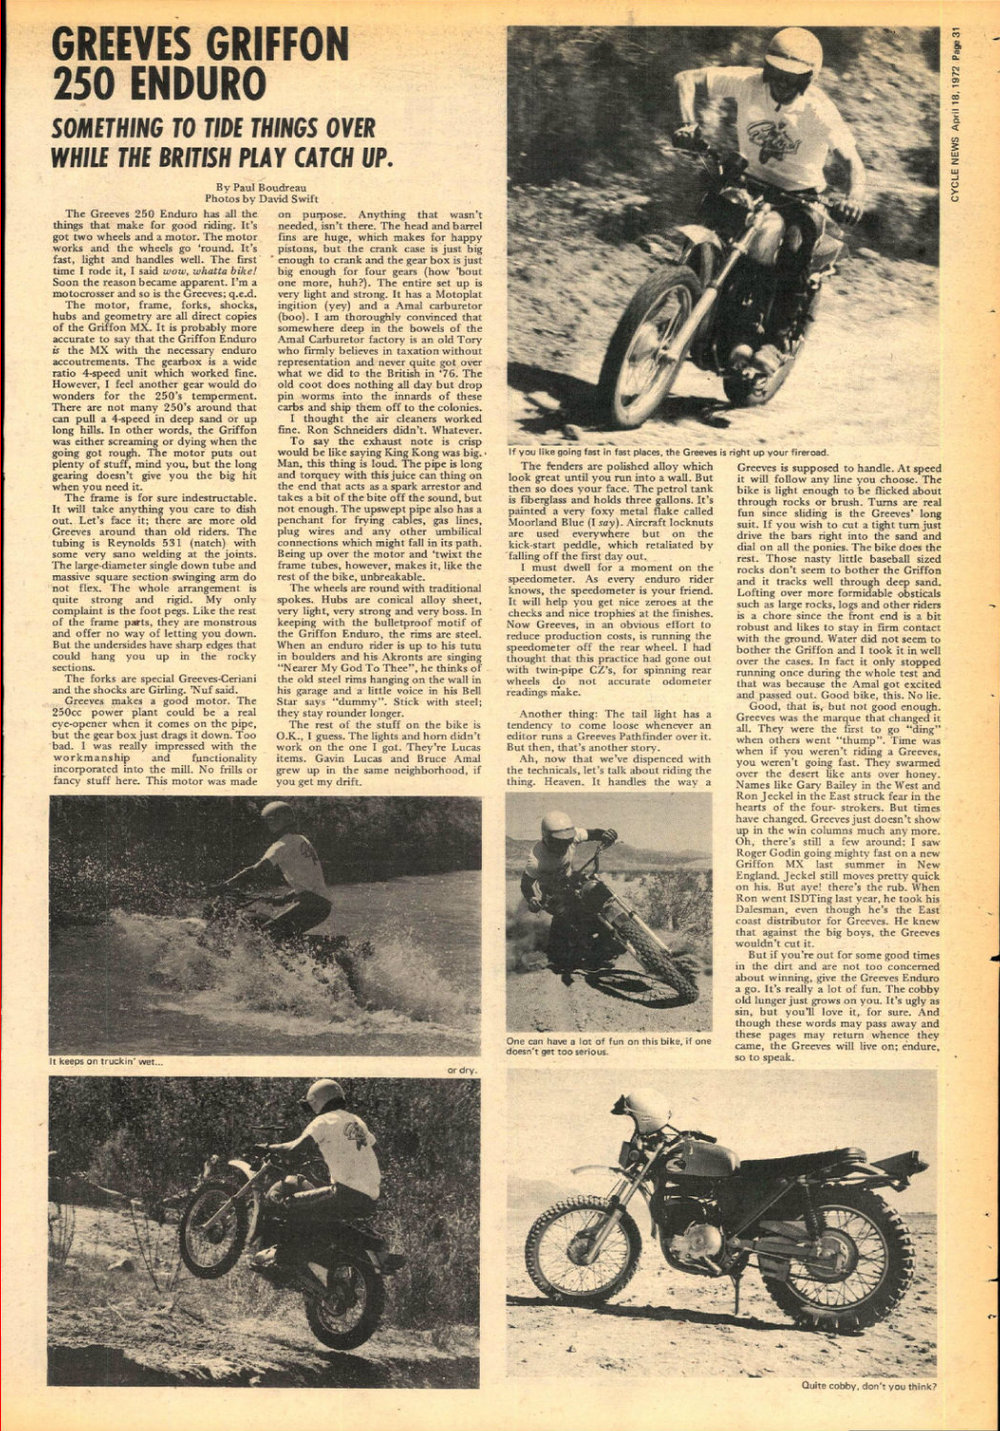 1972 Greeves Griffon 250 Enduro 01.jpg